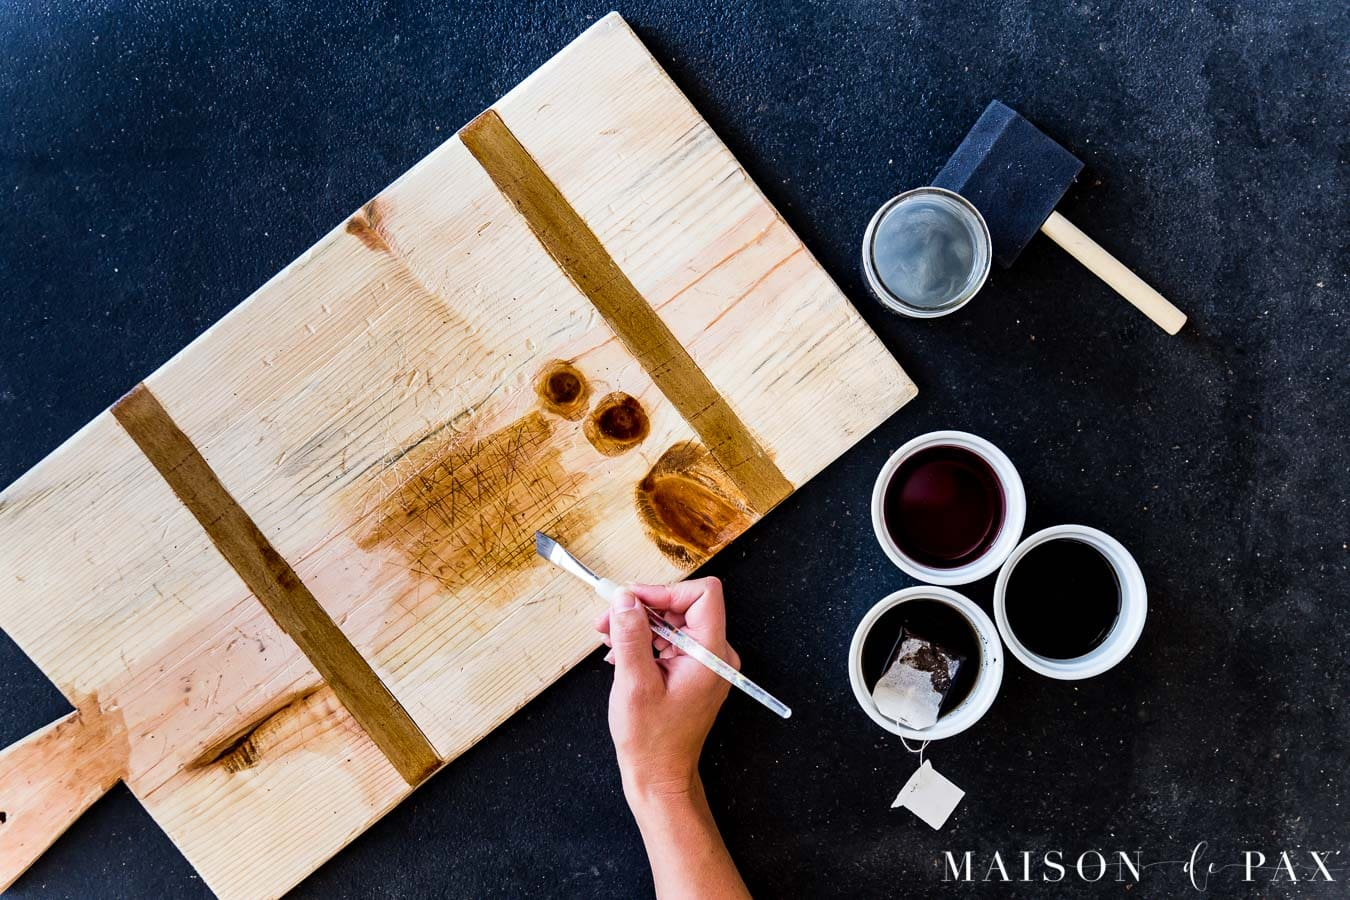 staining diy charcuterie board with natural stains | Maison de Pax